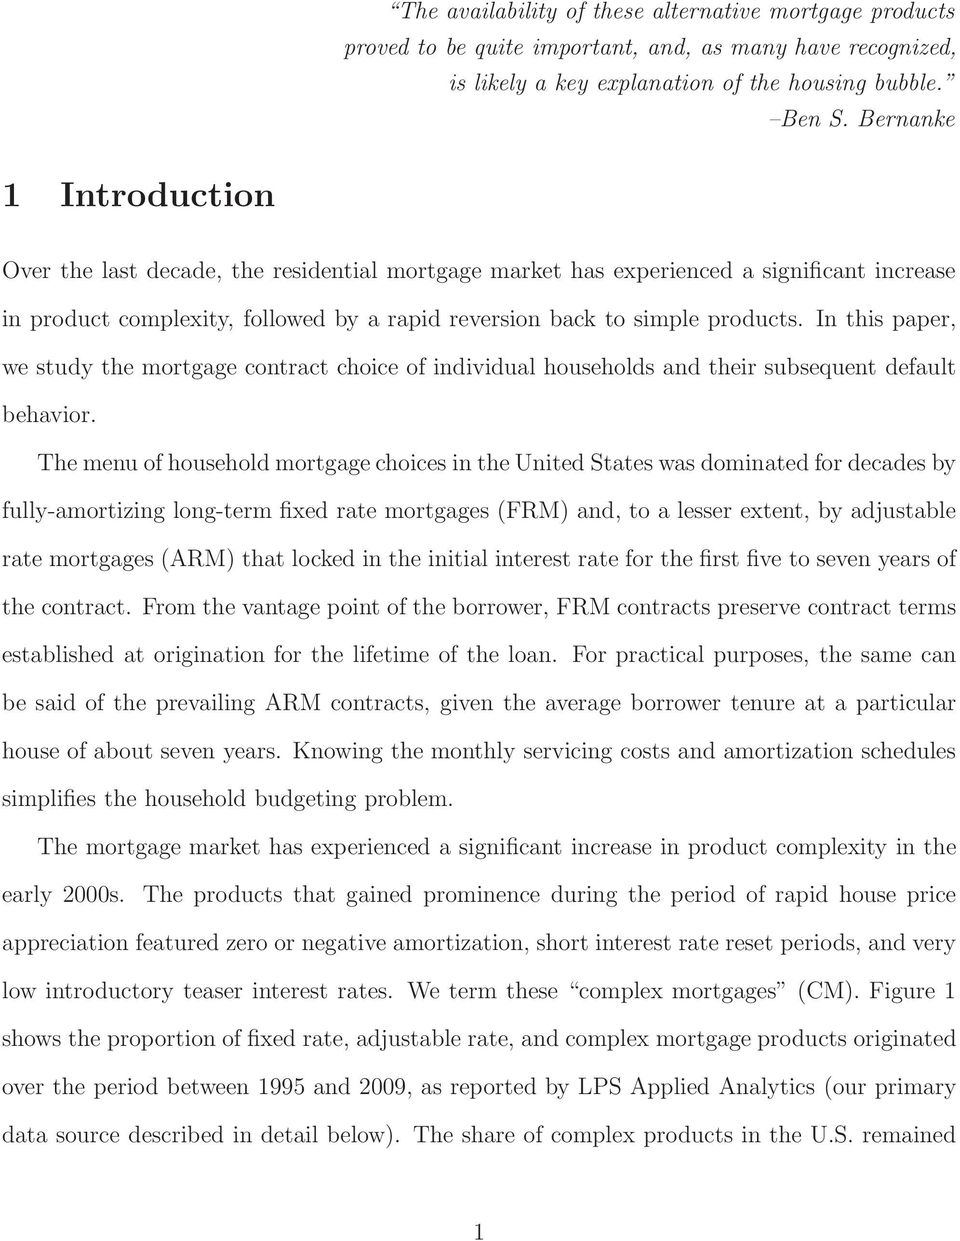 In this paper, we study the mortgage contract choice of individual households and their subsequent default behavior.